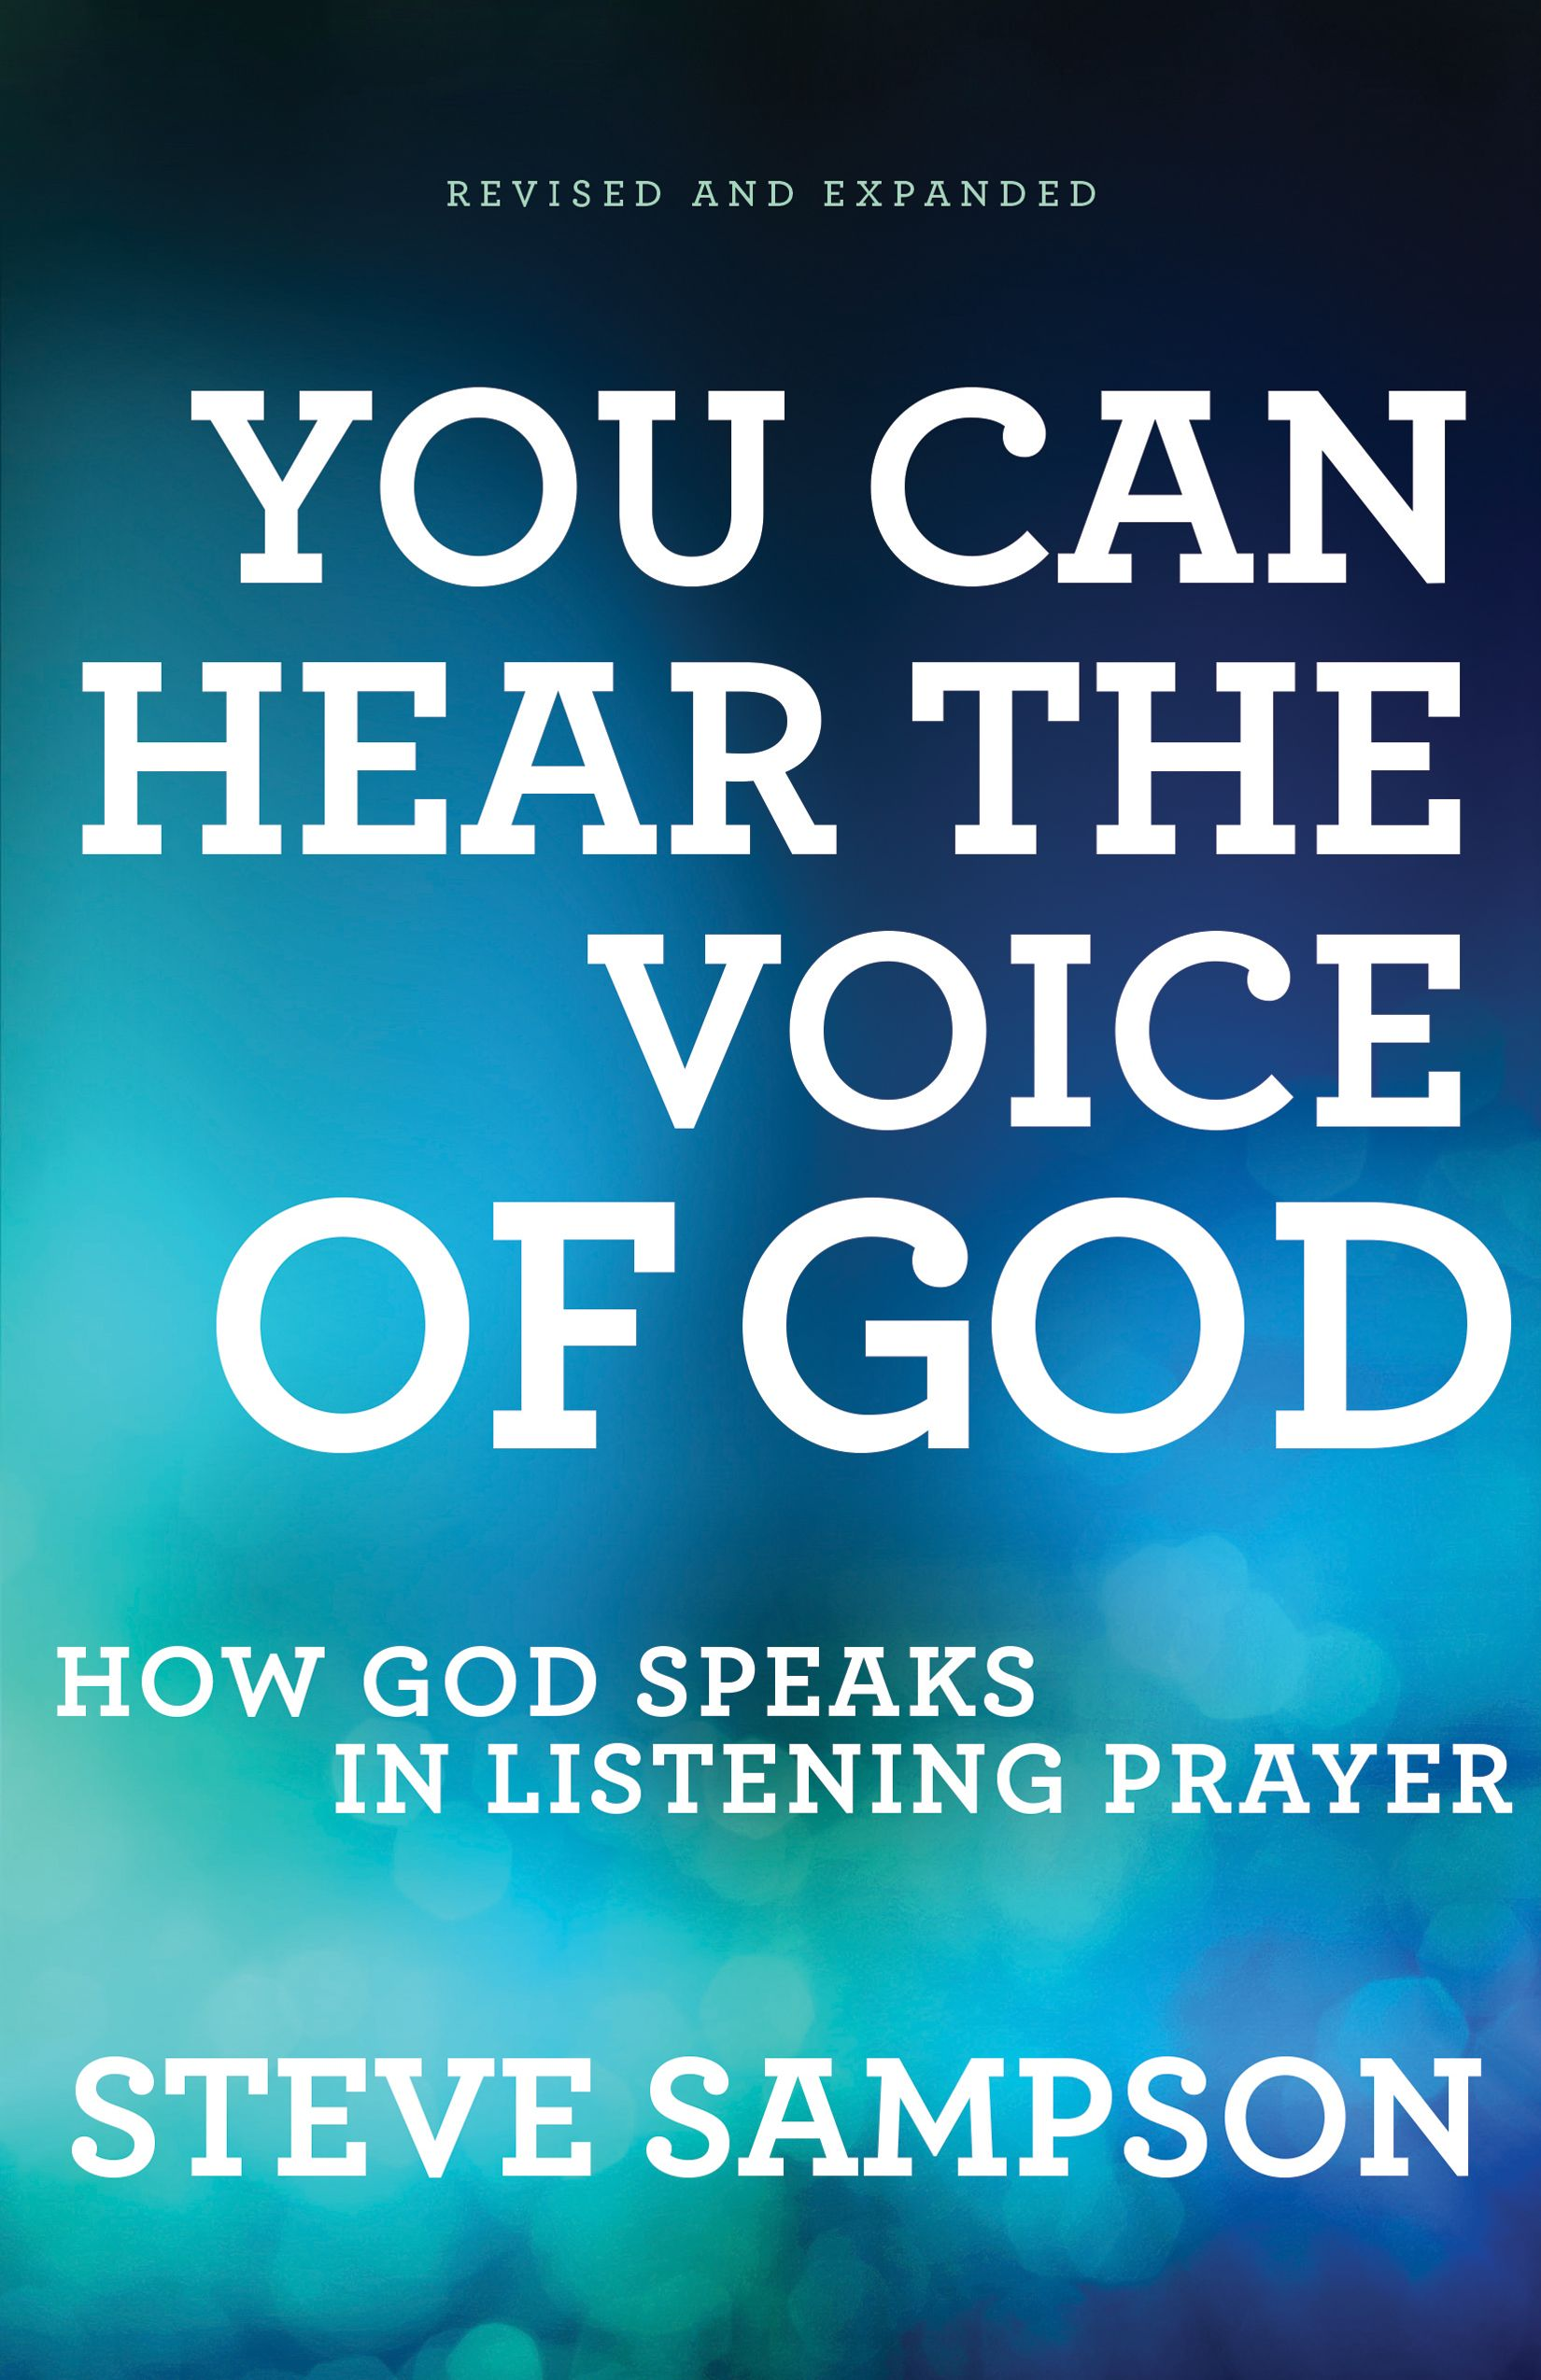 How to pray and listen to god